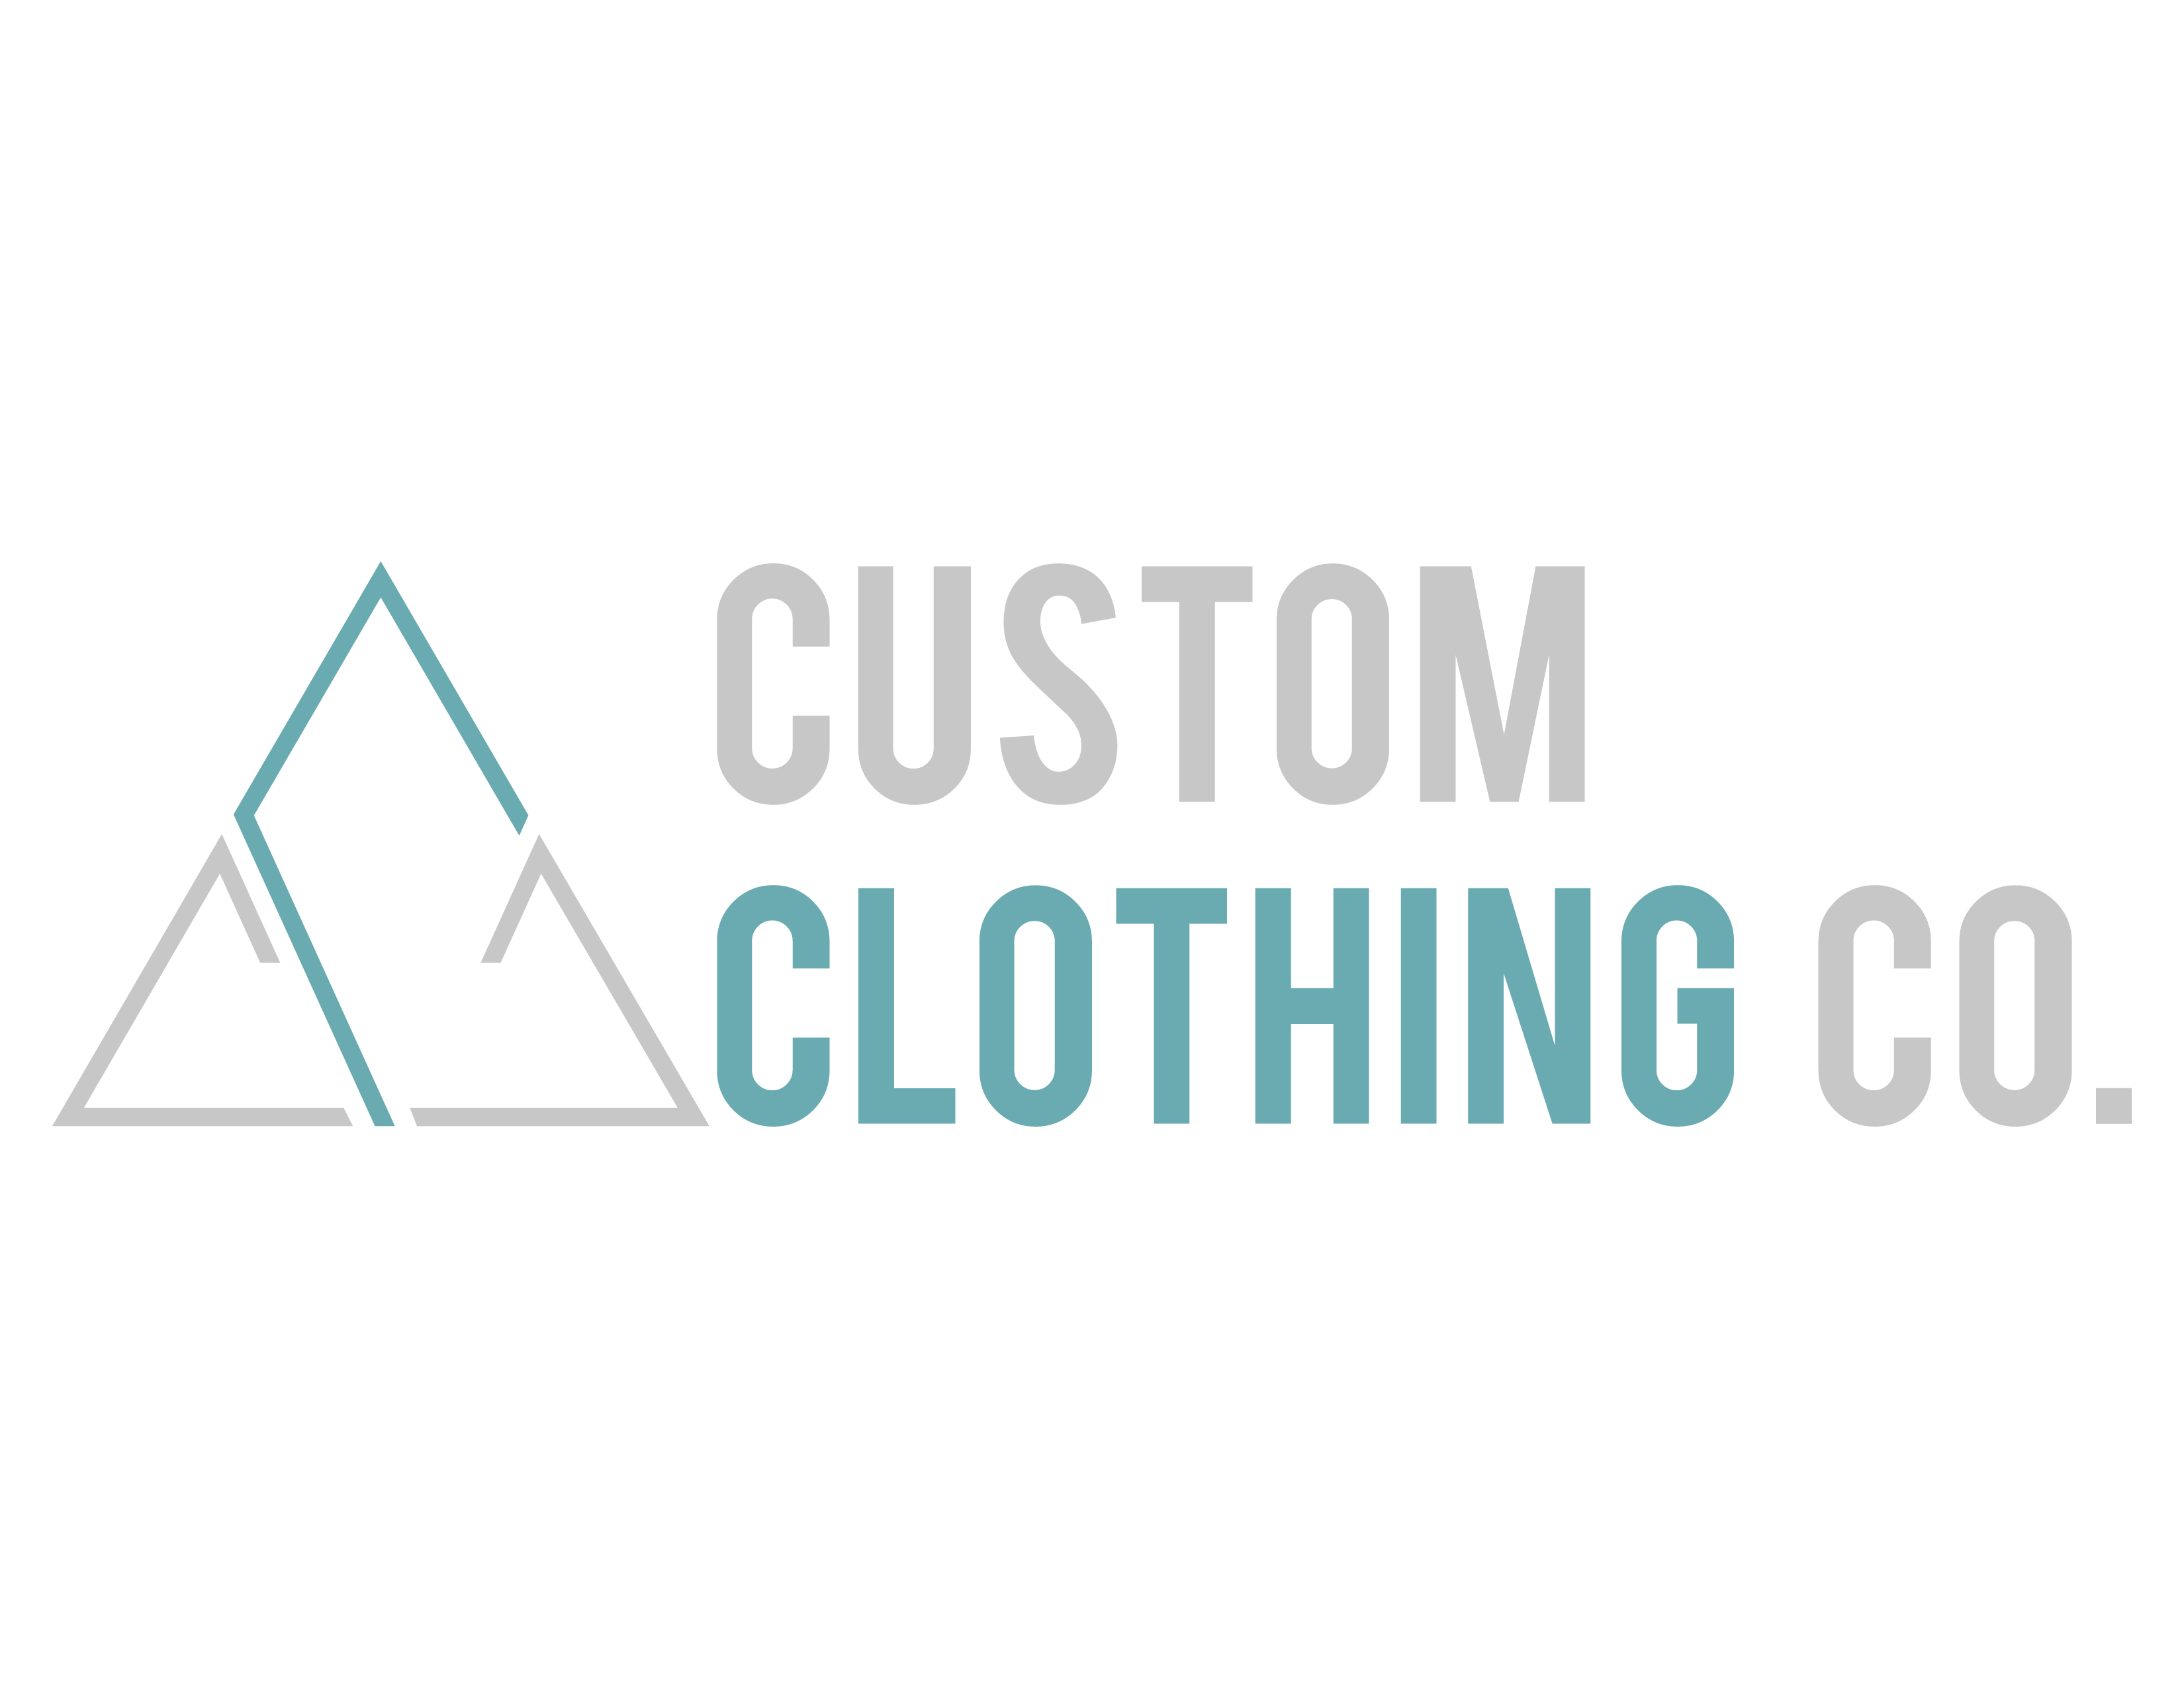 Custom Clothing Co.